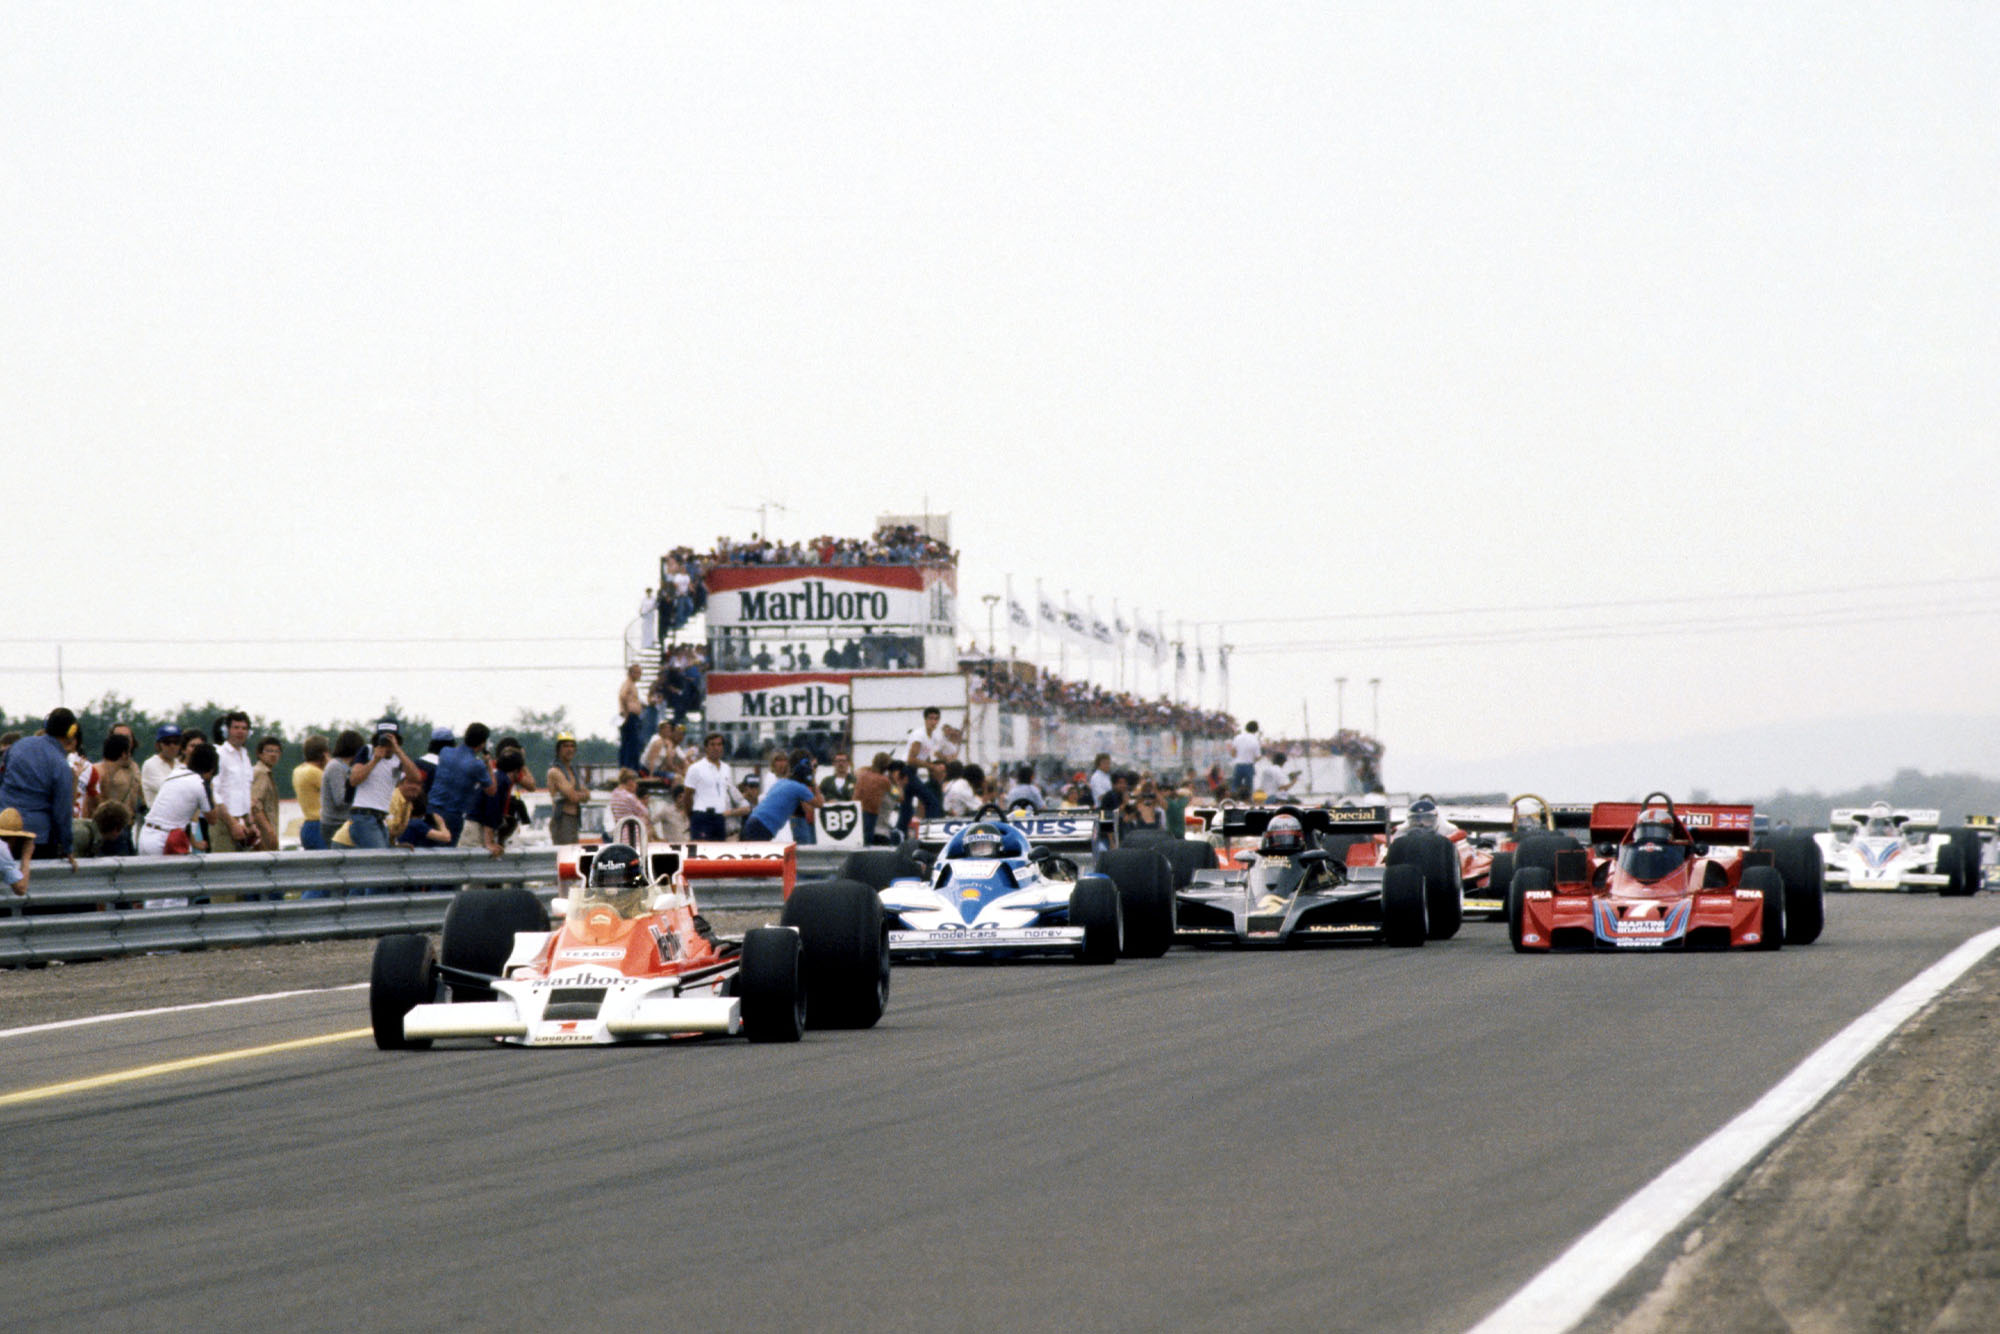 James Hunt (McLaren) leads at the start of the 1977 French Grand Prix, Dijon.